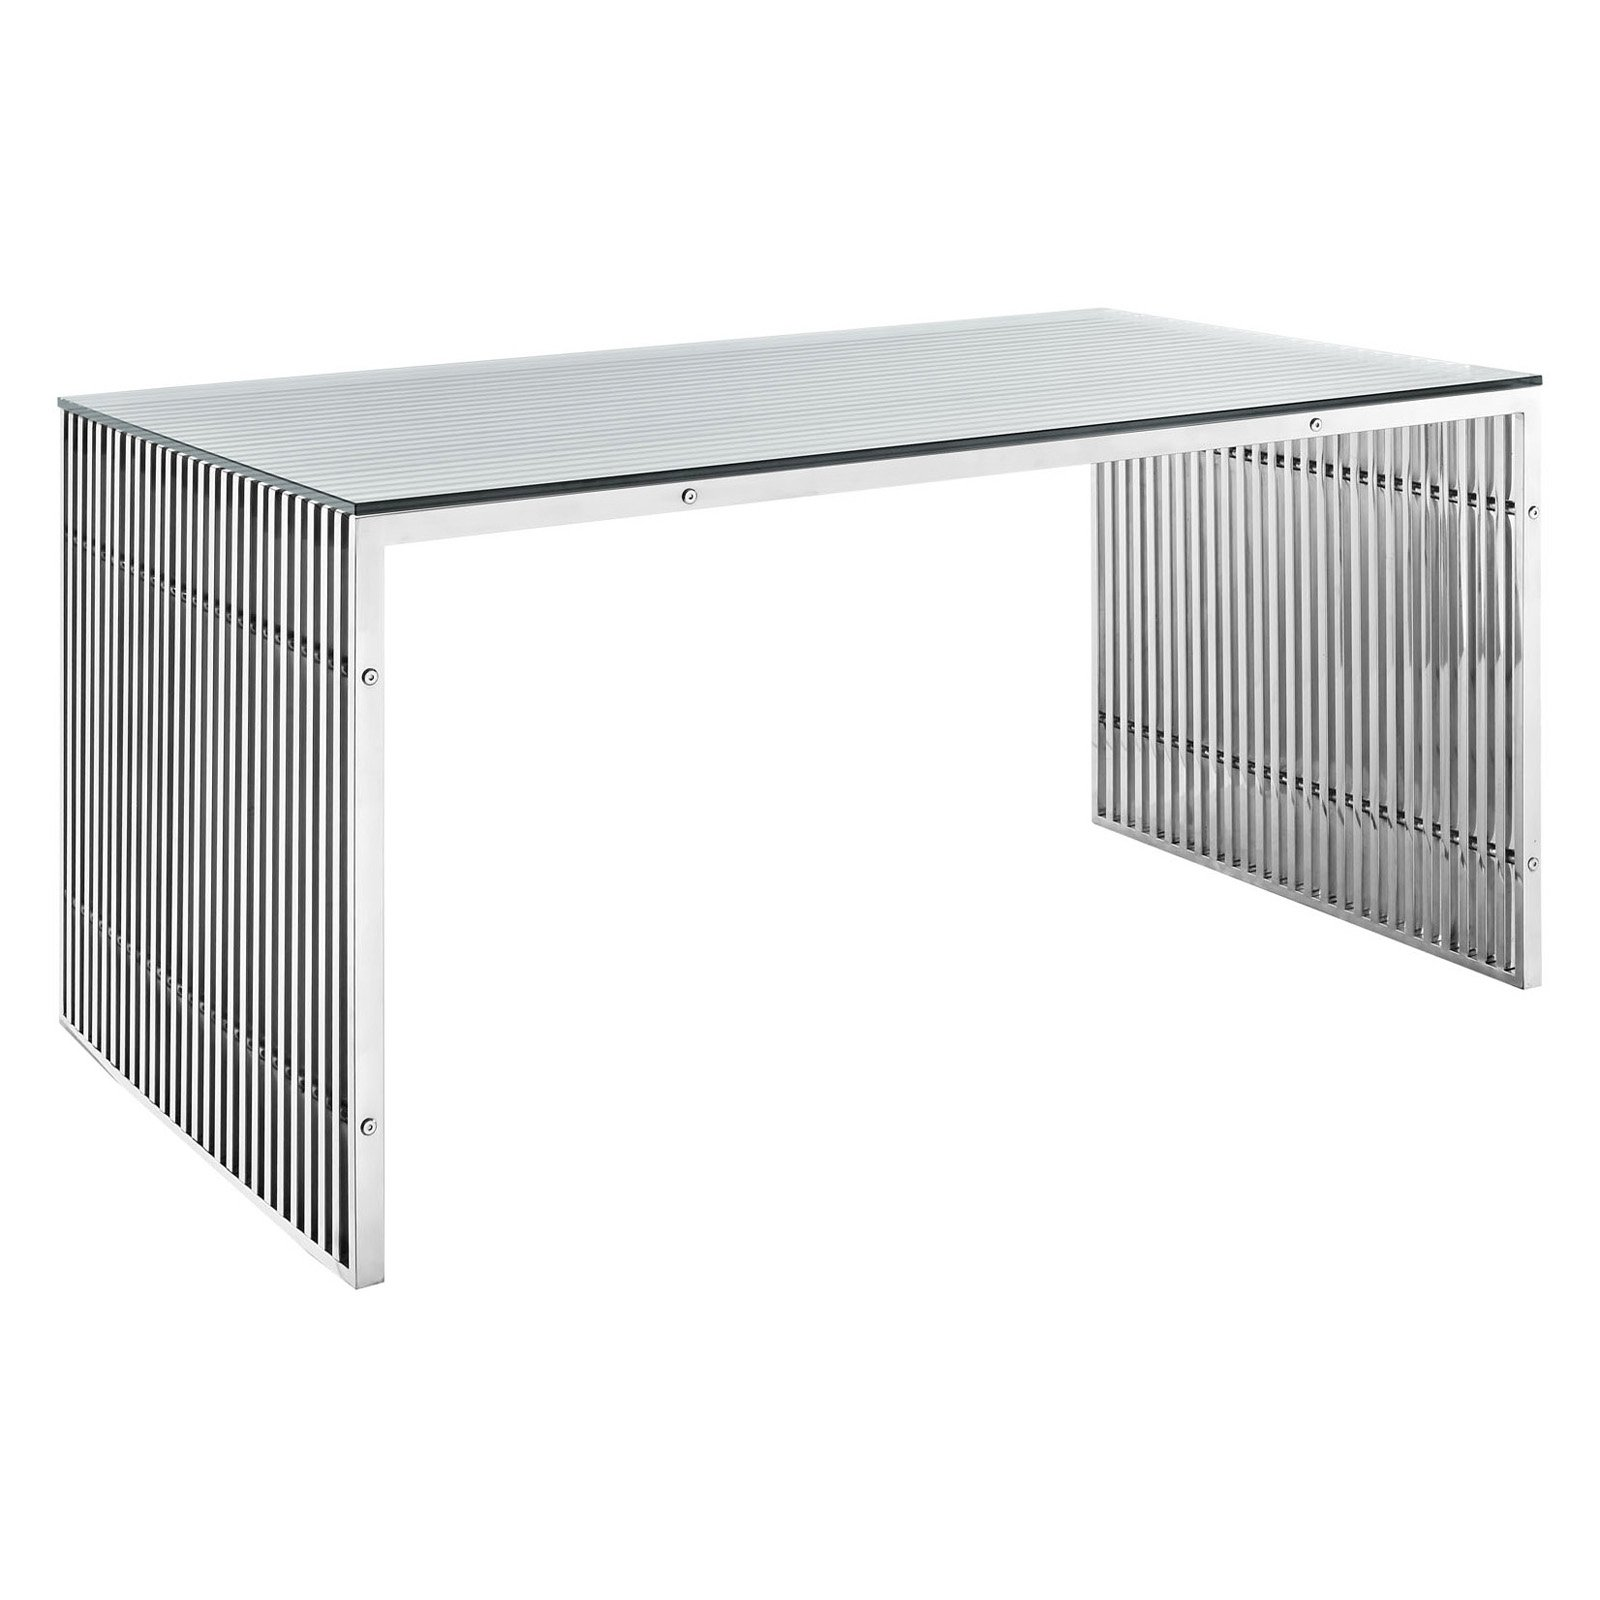 Modway Gridiron Stainless Steel Dining Table, Multiple Colors